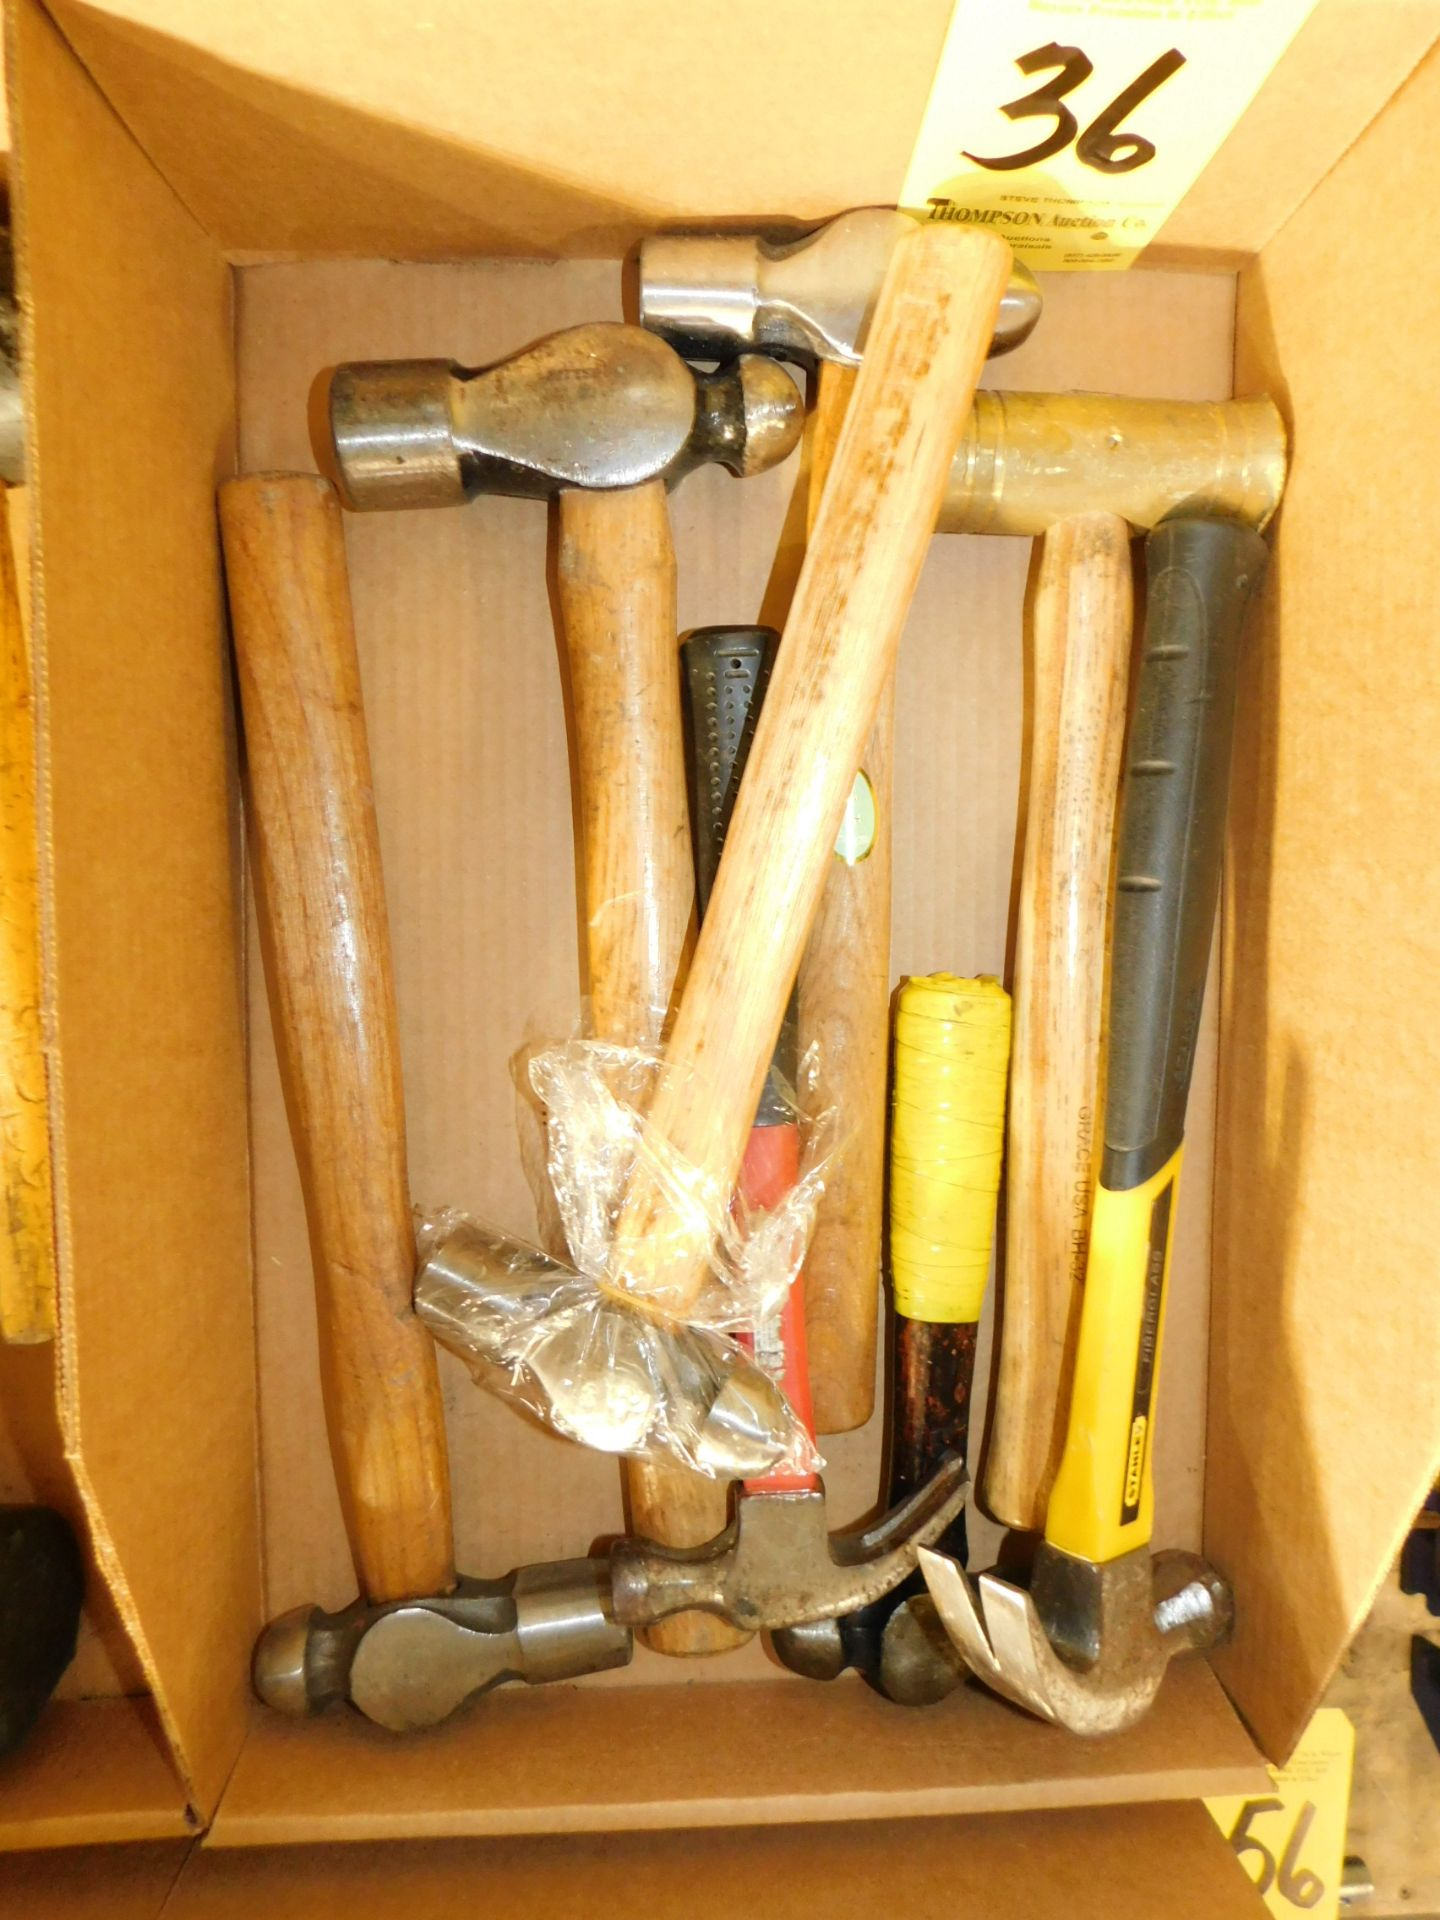 Lot 36 - Miscellaneous Hammers